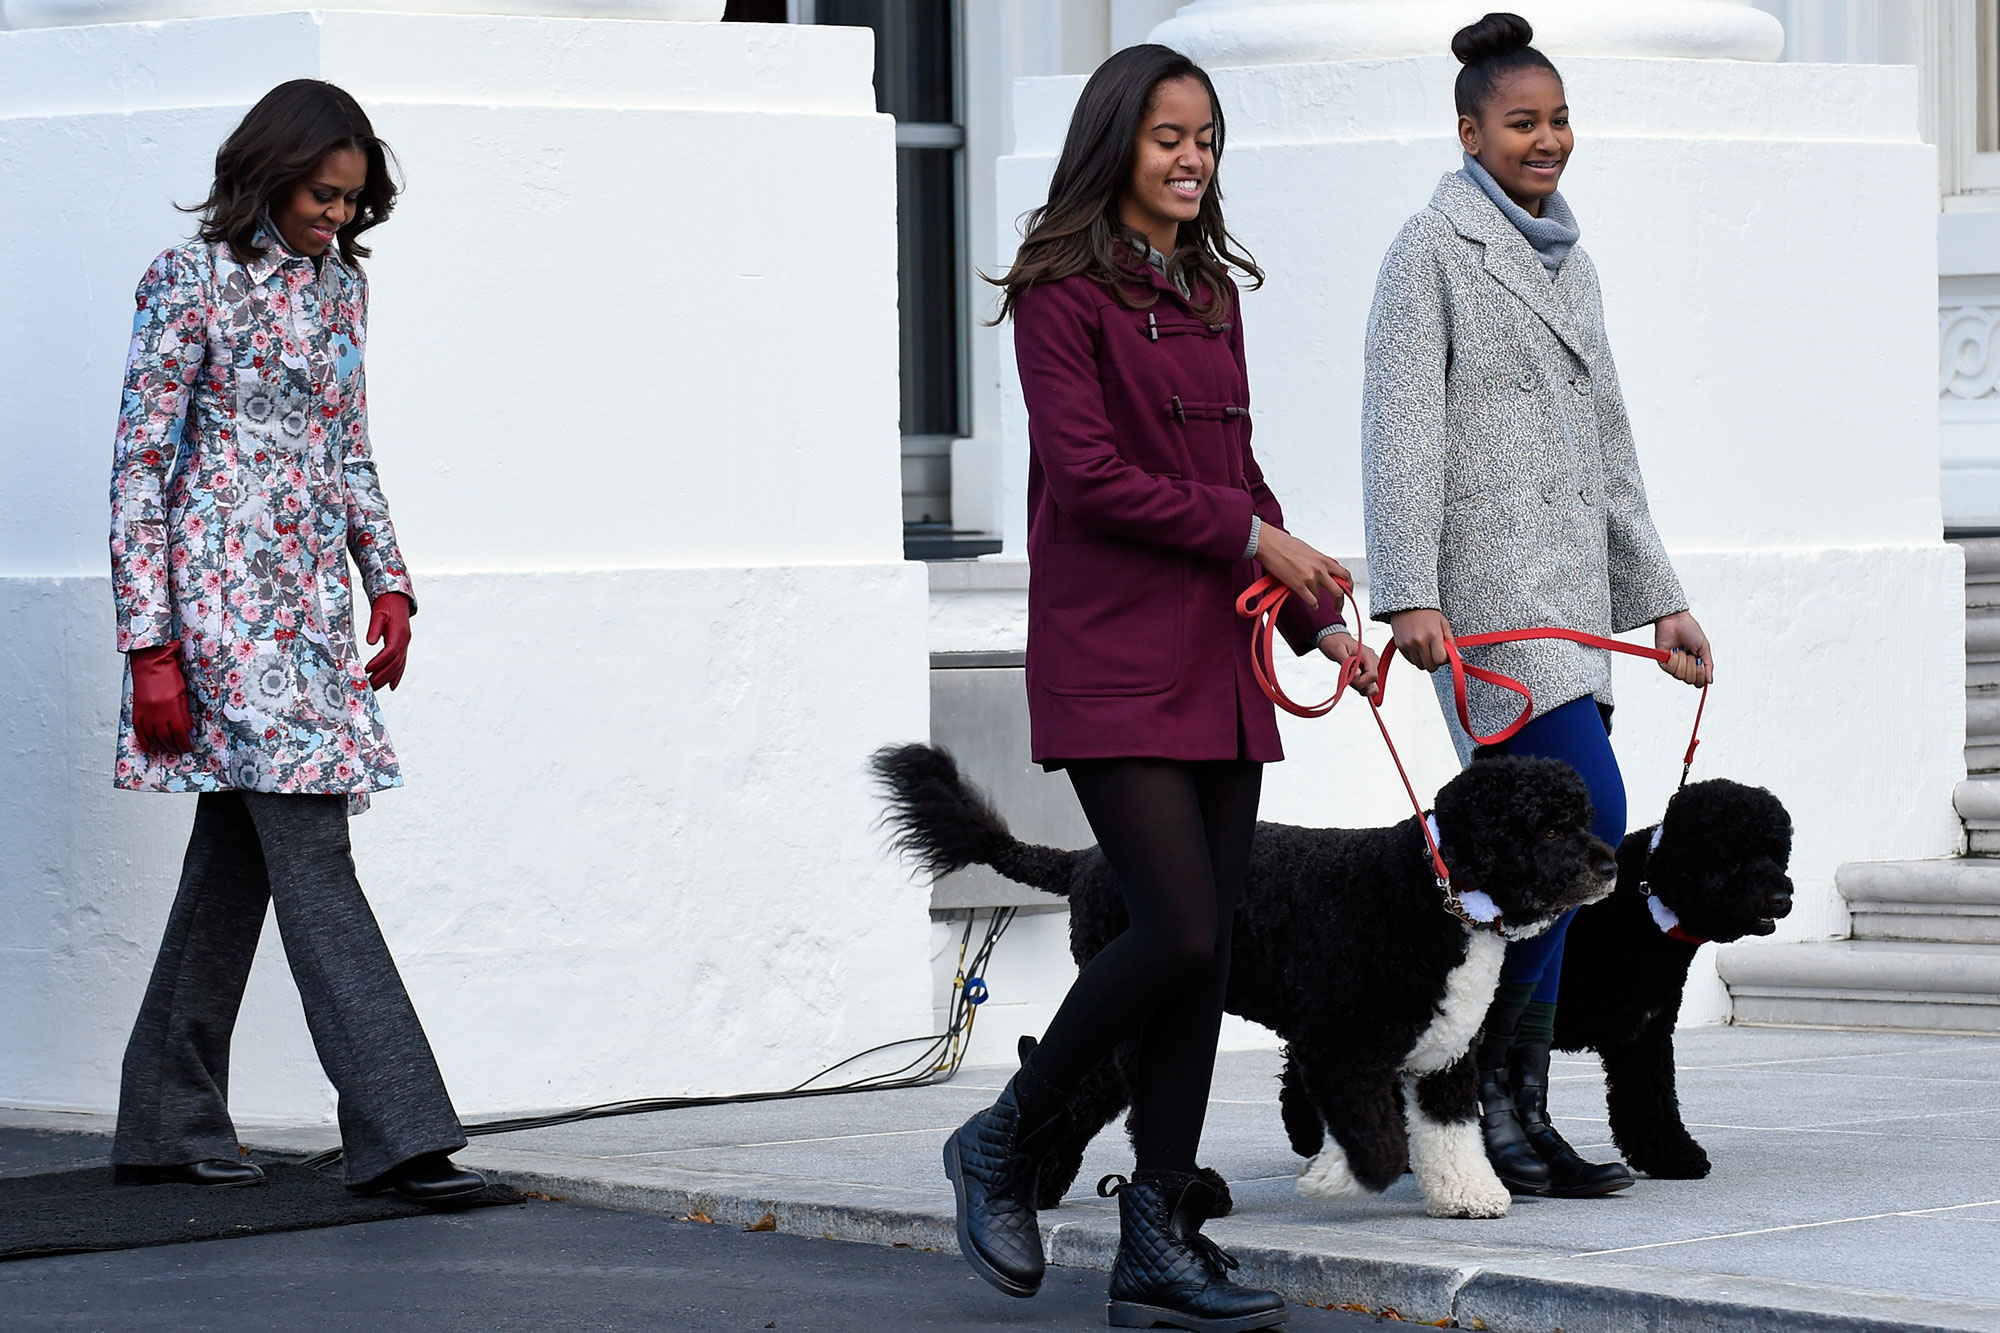 Michelle Obama, Sasha Obama, Malia Obama, Bo Obama, Sunny Obama